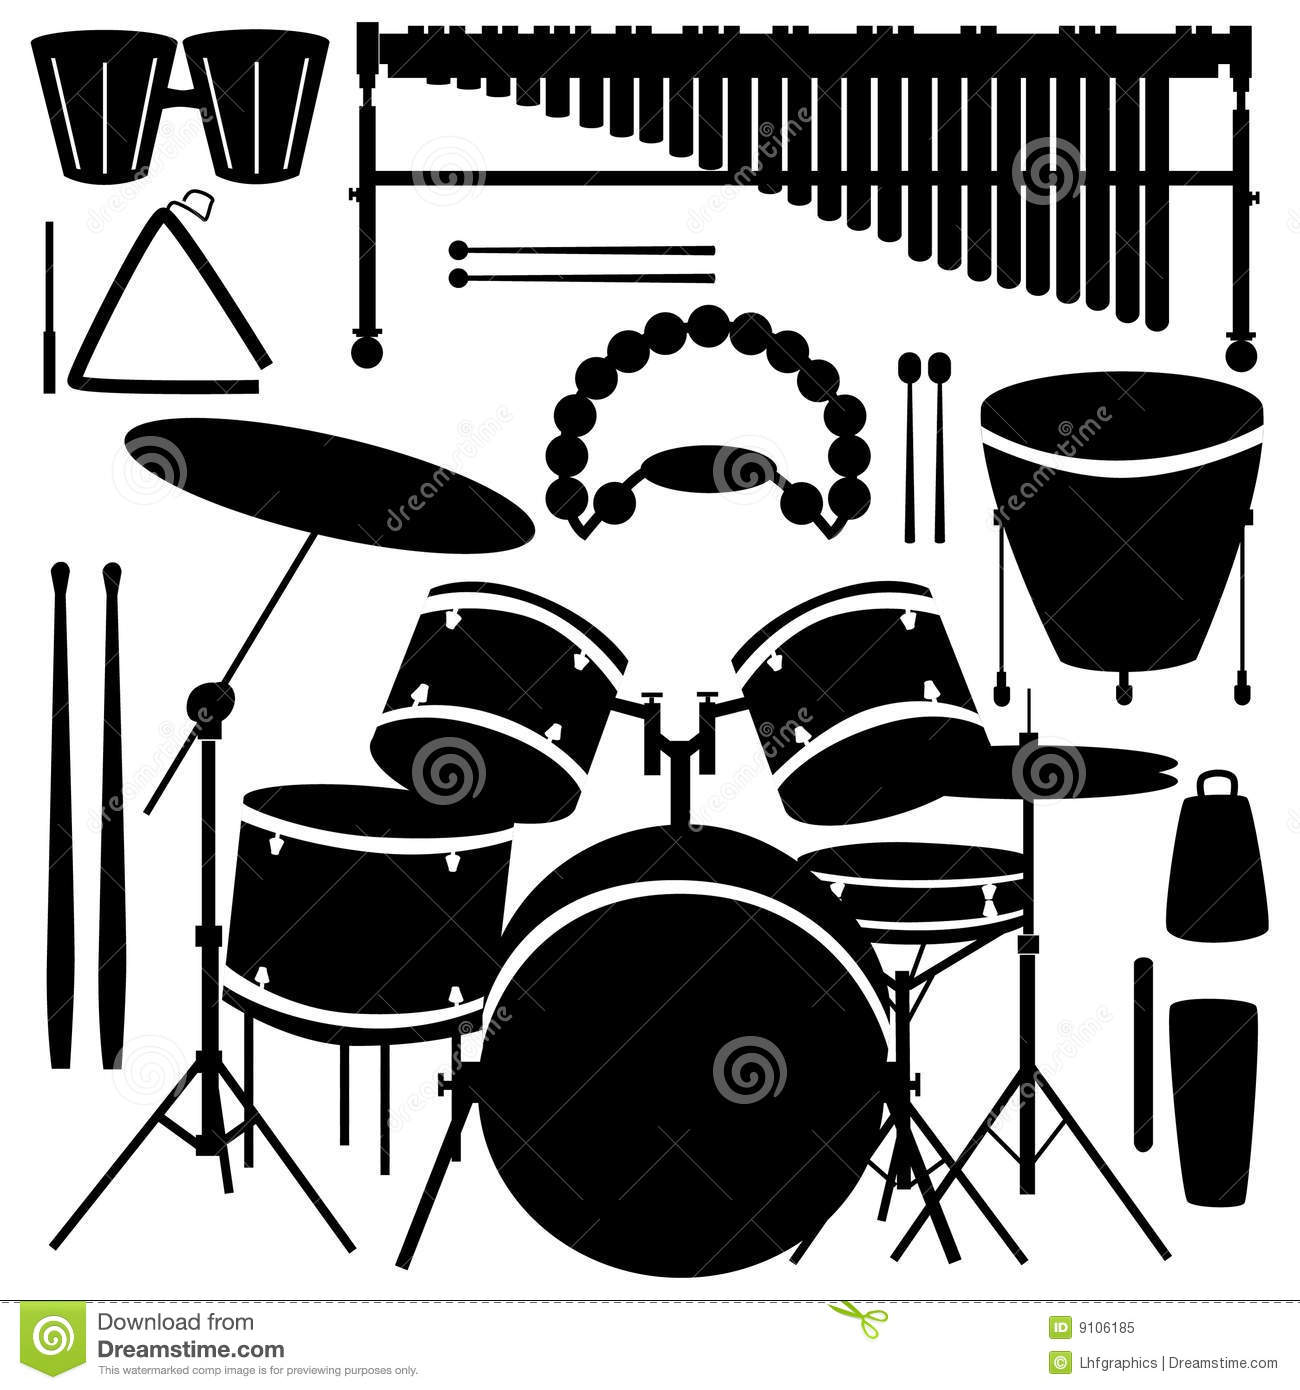 drums and percussion instruments stock vector illustration of maraca bass 9106185. Black Bedroom Furniture Sets. Home Design Ideas